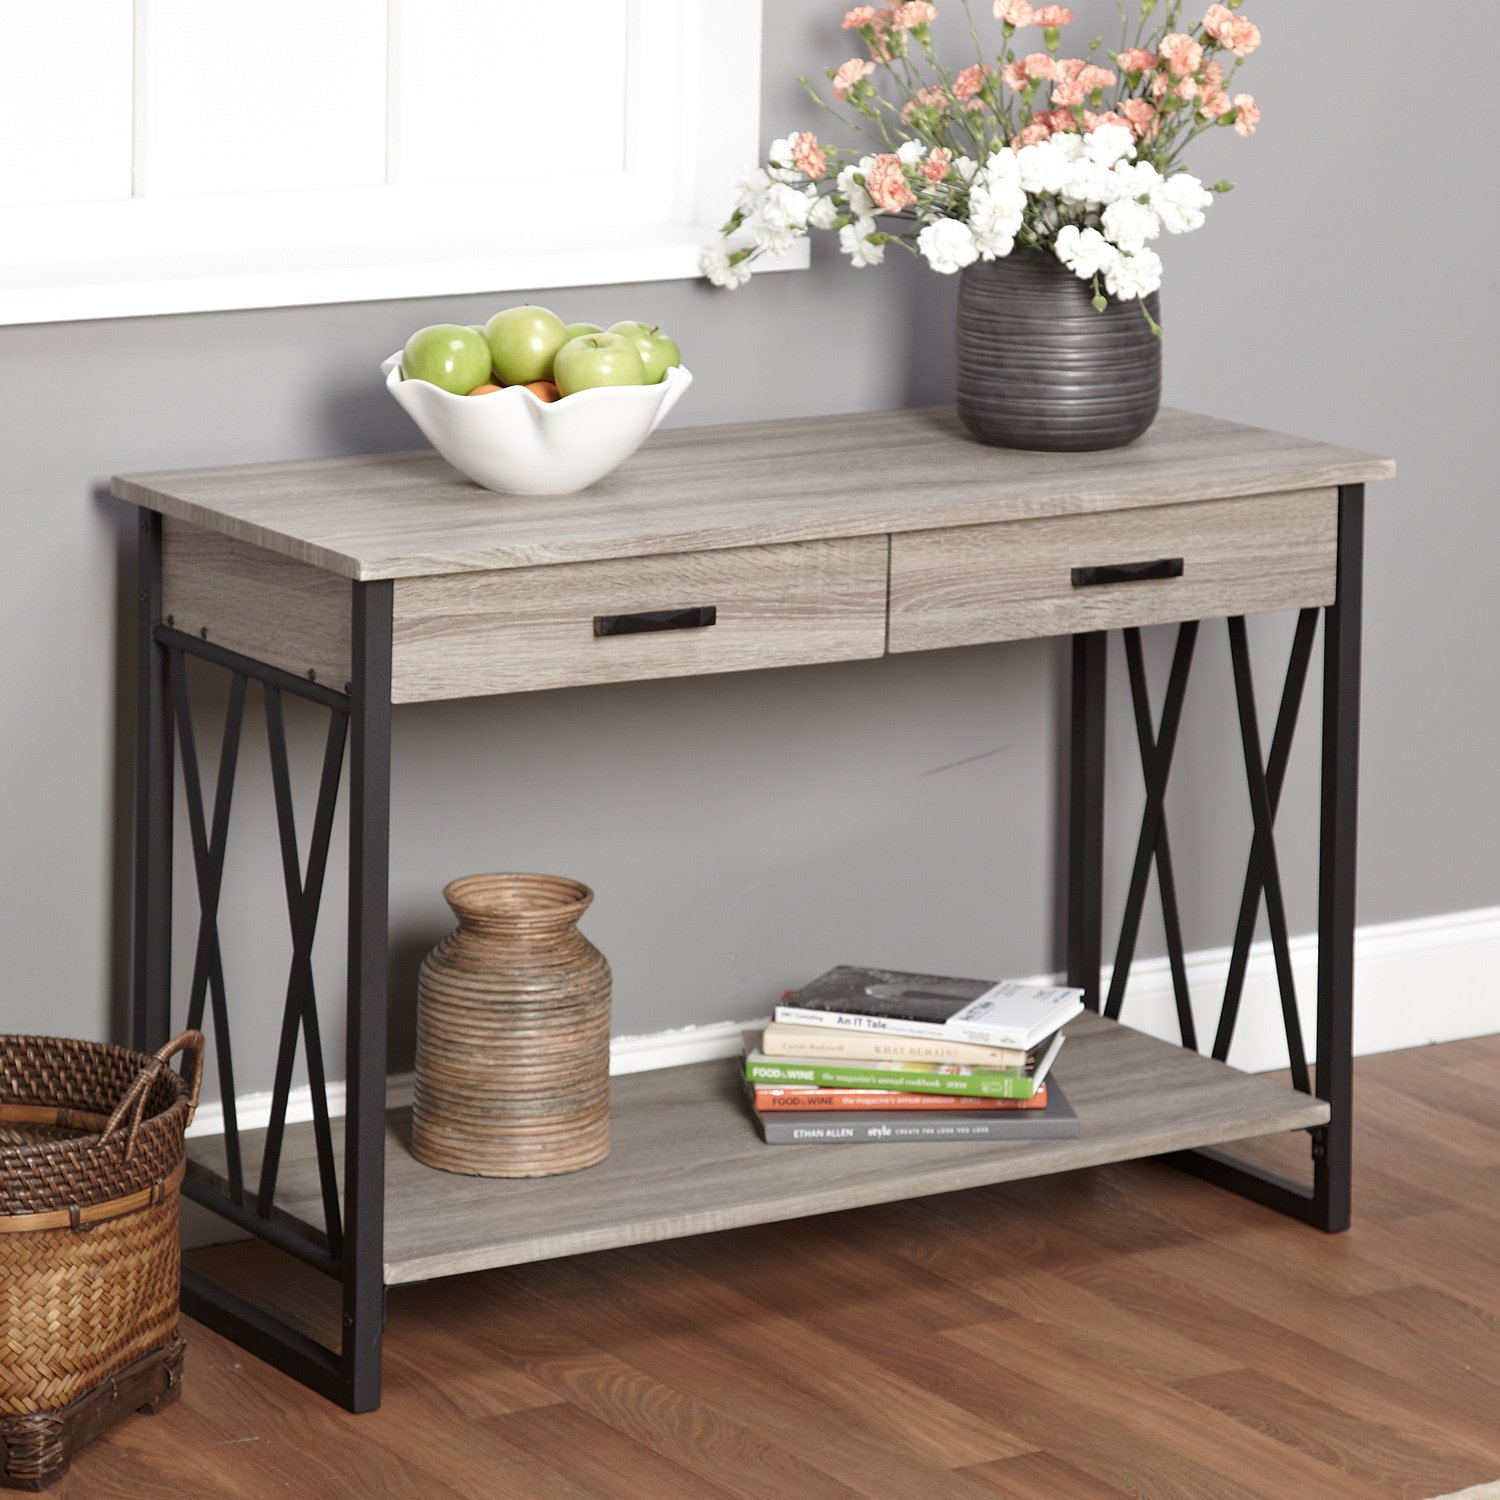 Console sofa table living home furniture decor room hallway accent entryway wood ebay - Sofa table with cabinets ...